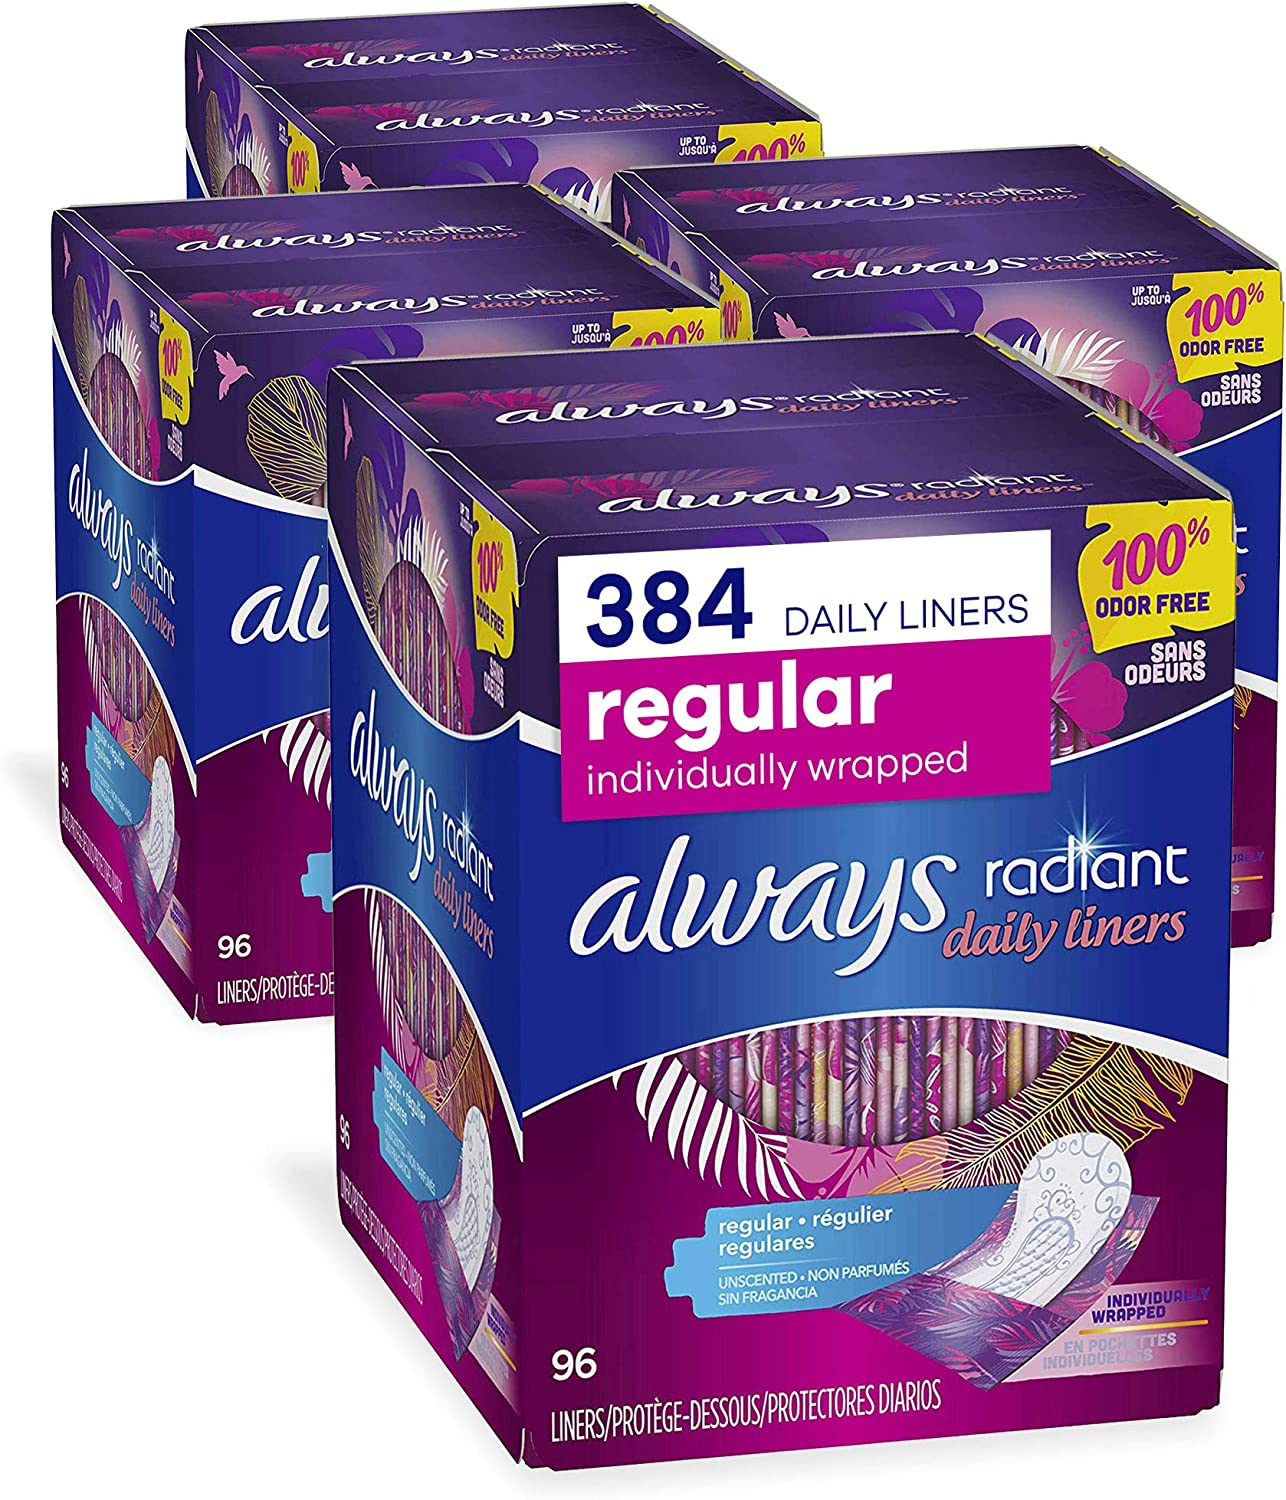 Always Radiant Daily Feminine Panty Liners for Women, Regular Absorbency, Unscented, Wrapped, 96X4, 384 Count (Pack of 4): Health & Personal Care